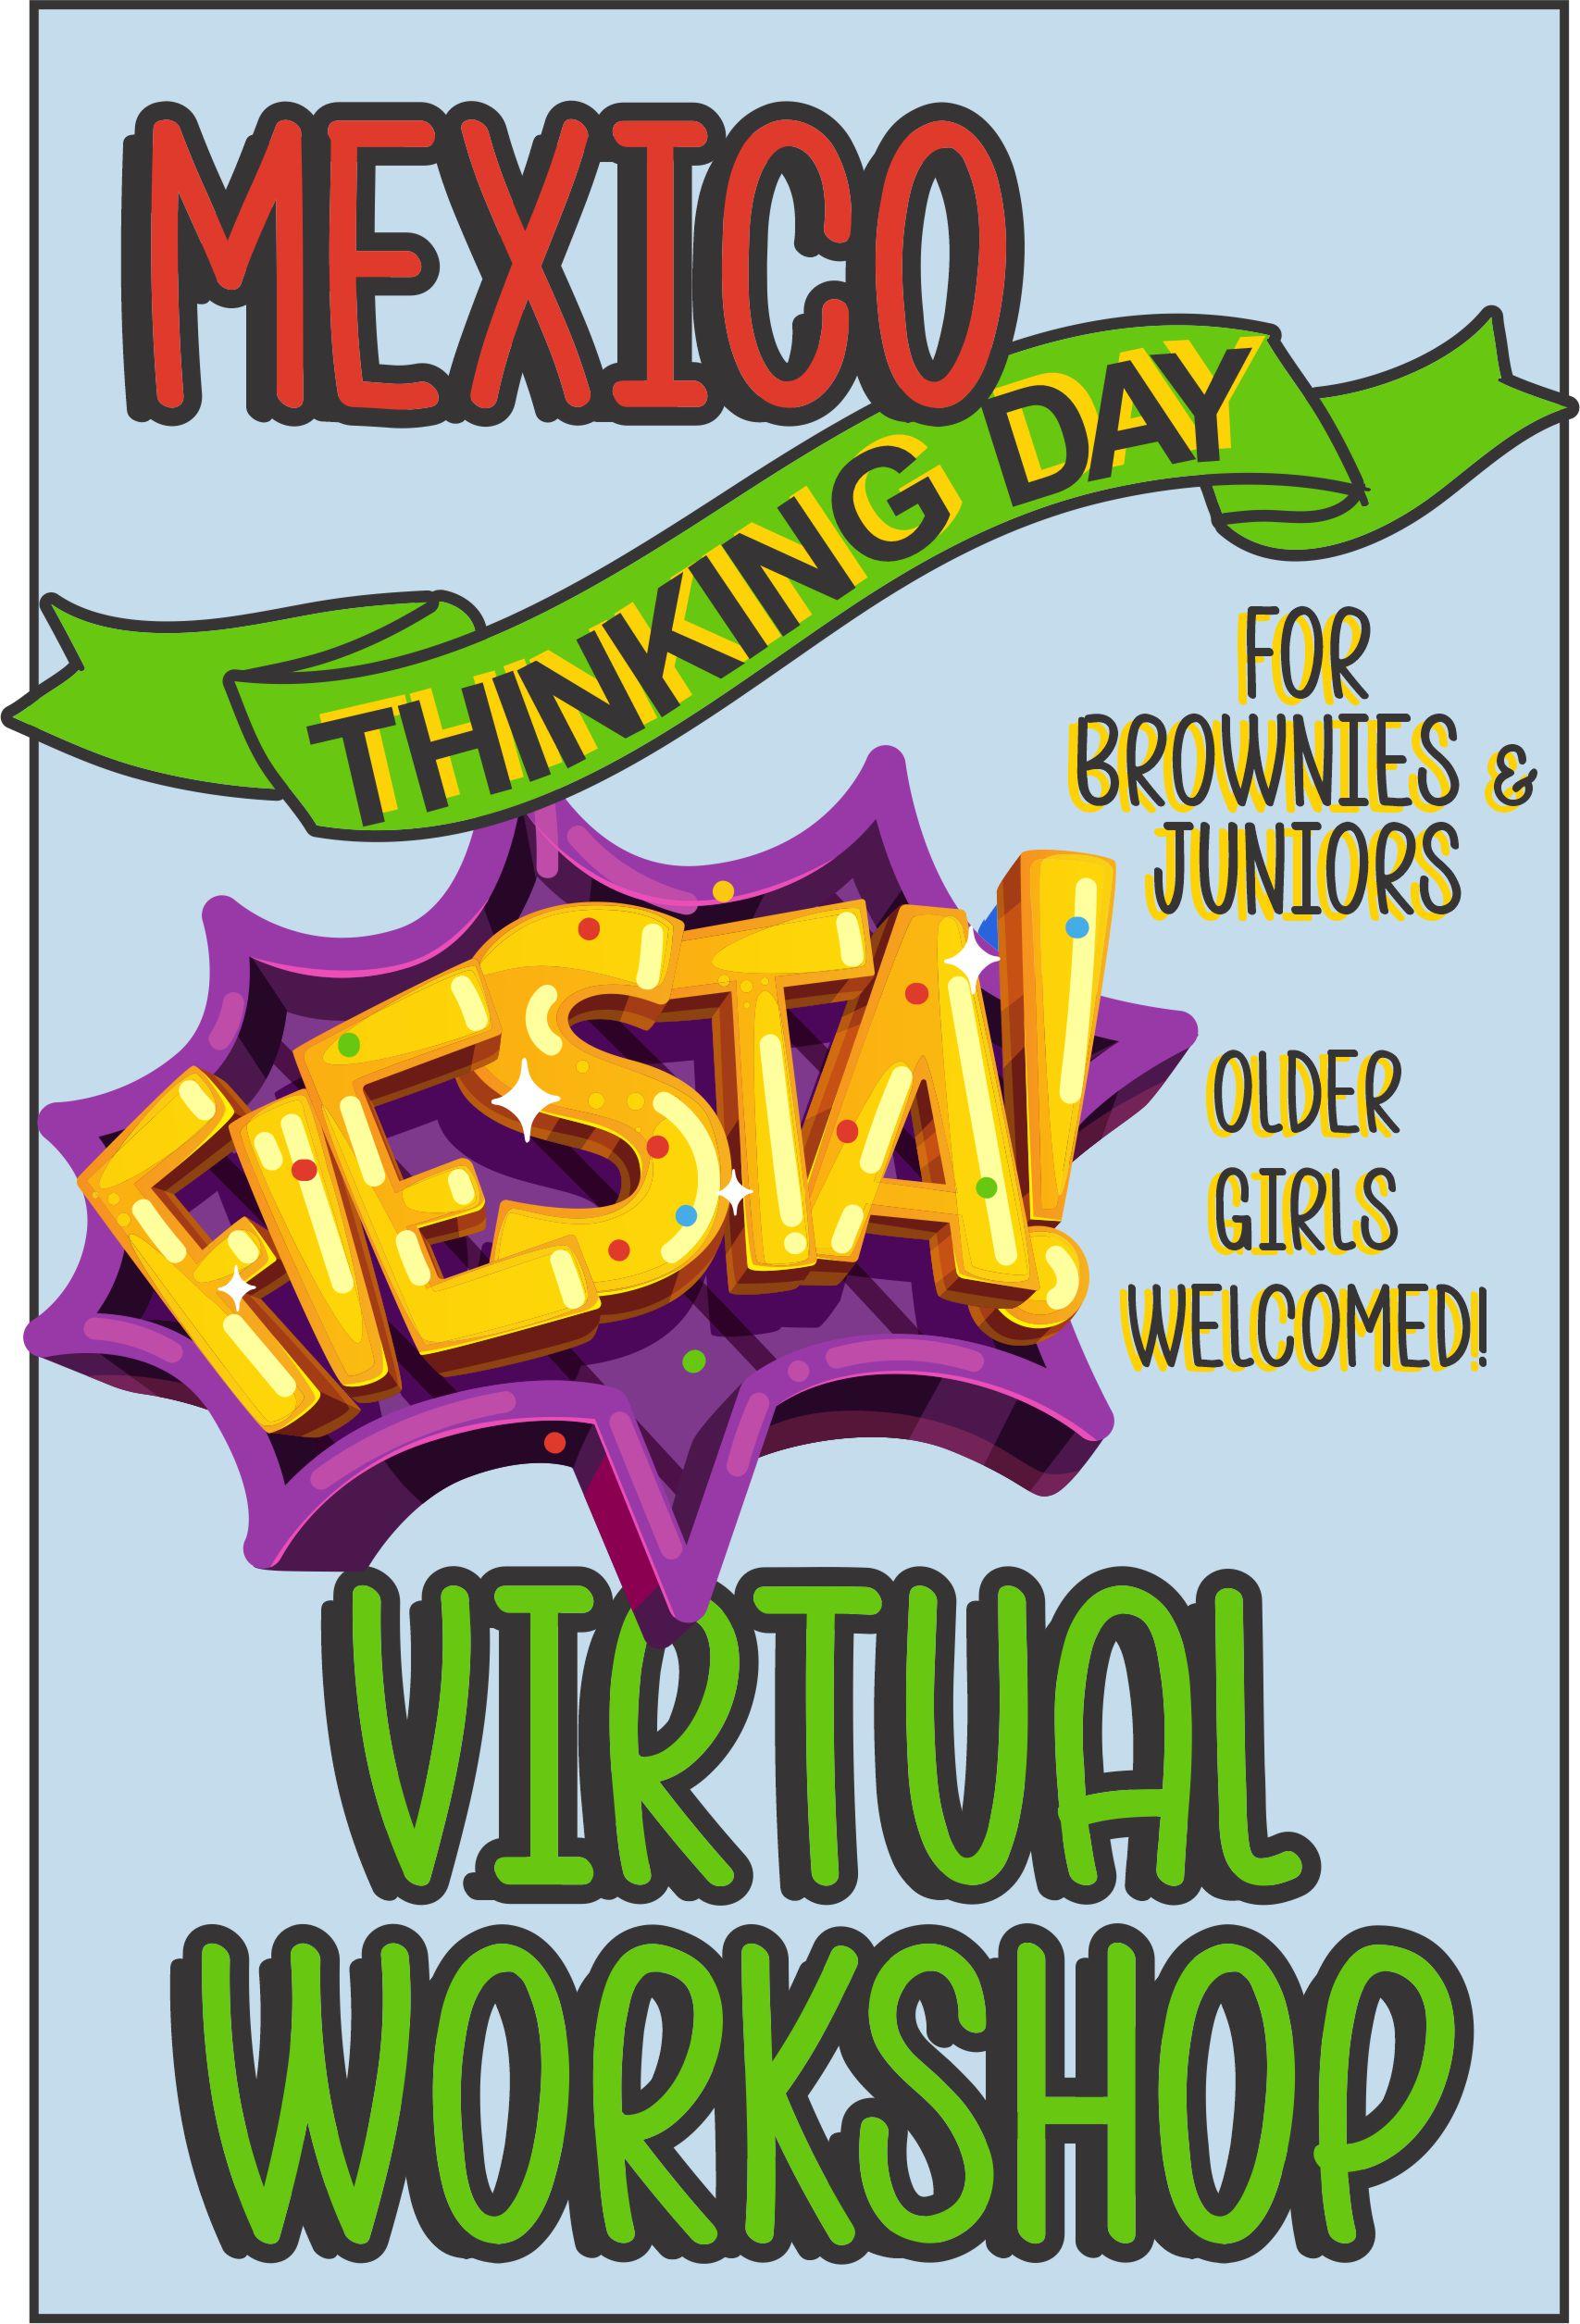 Explore the traditions, food, clothing, and customs of Mexico. The price includes supplies and an embroidered patch! #makingfriends #thinkingday #mexico #virtualthinkingday #onlineclass #customs #mexicothinkingday #juniors #brownies #girlscouts via @gsleader411